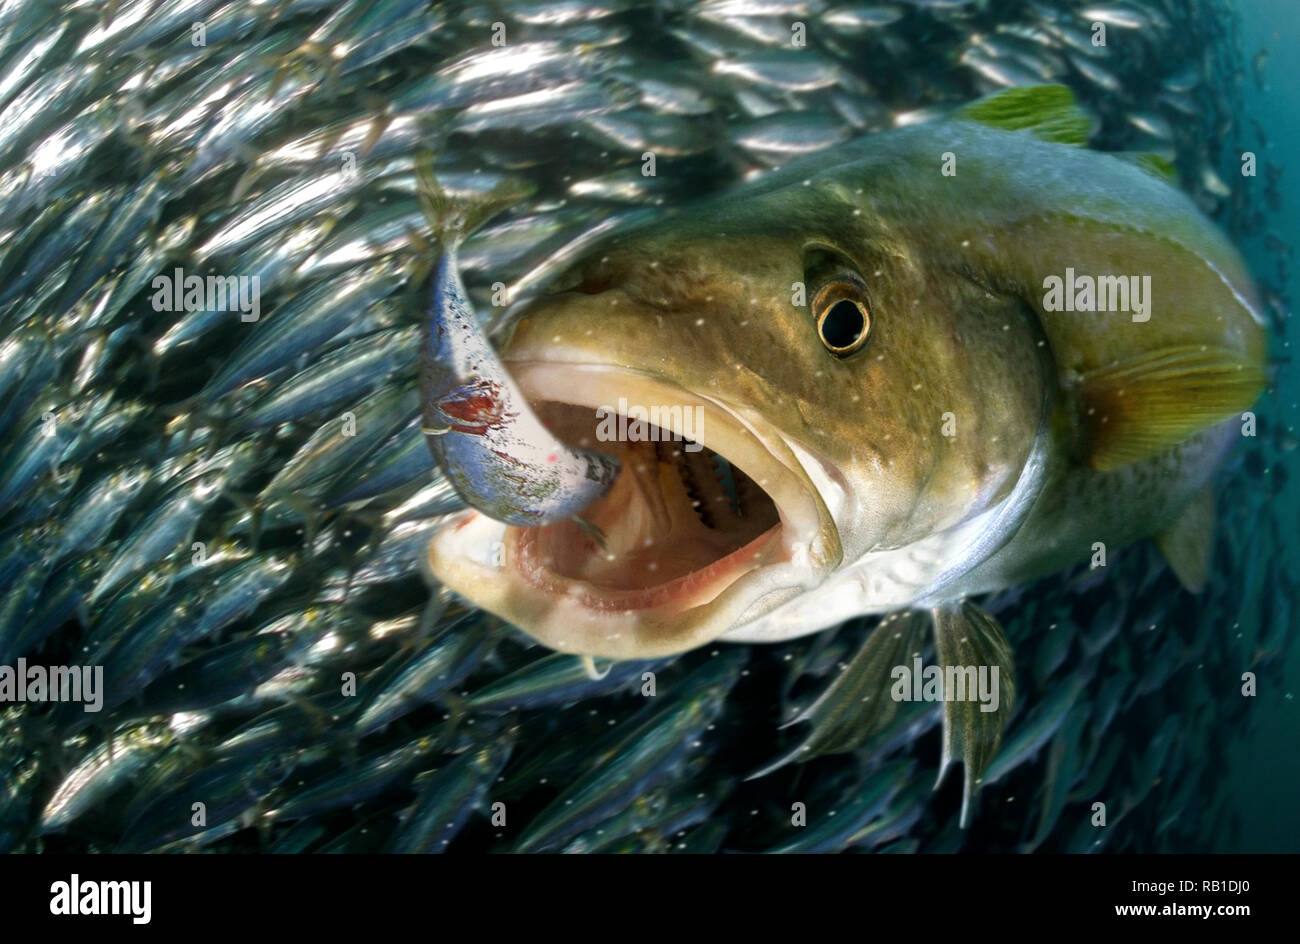 Atlantic cod, Gadus morhua, hunting sardines.Atlantic cod is a target species for recreational fishers in the North Atlantic. - Stock Image